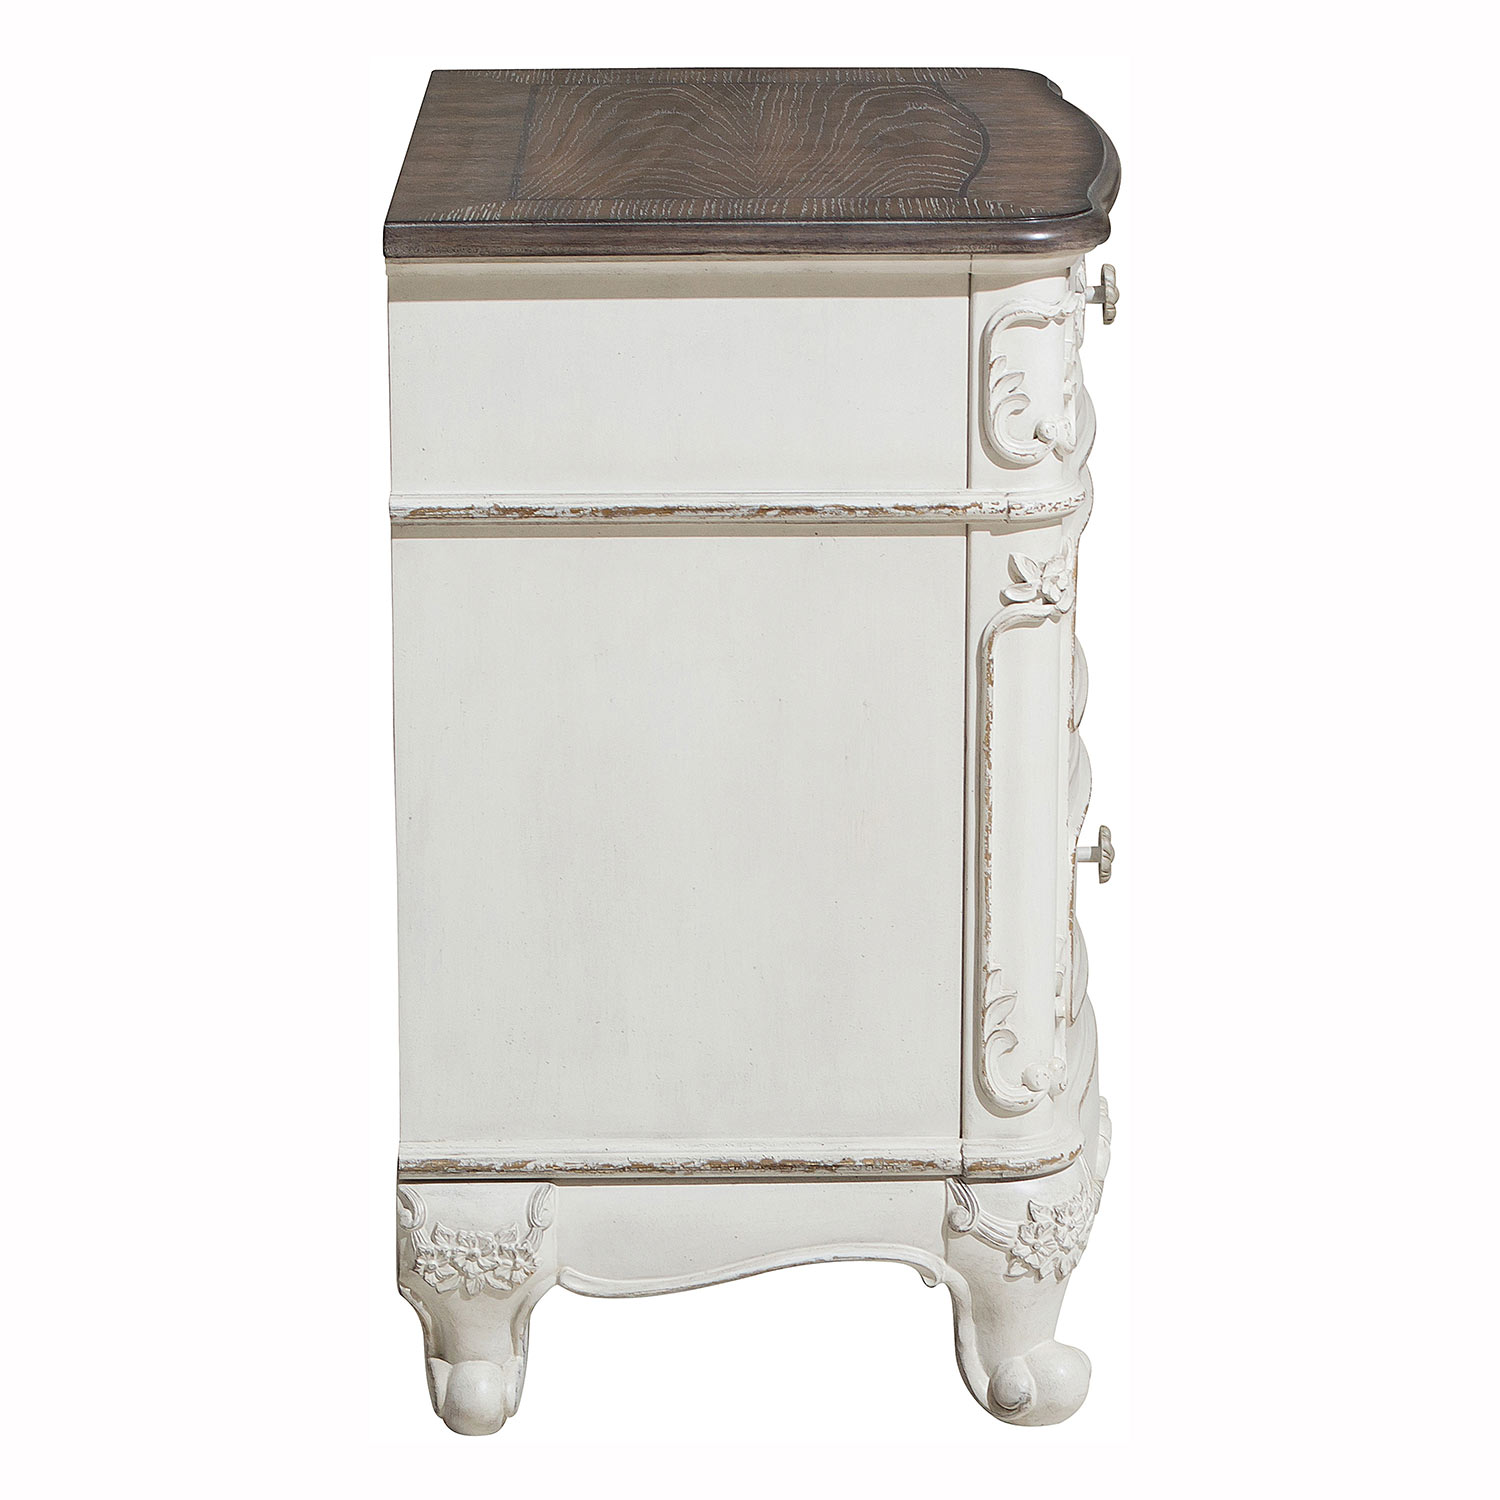 Homelegance Cinderella Night Stand - Antique White with Gray Rub-Through